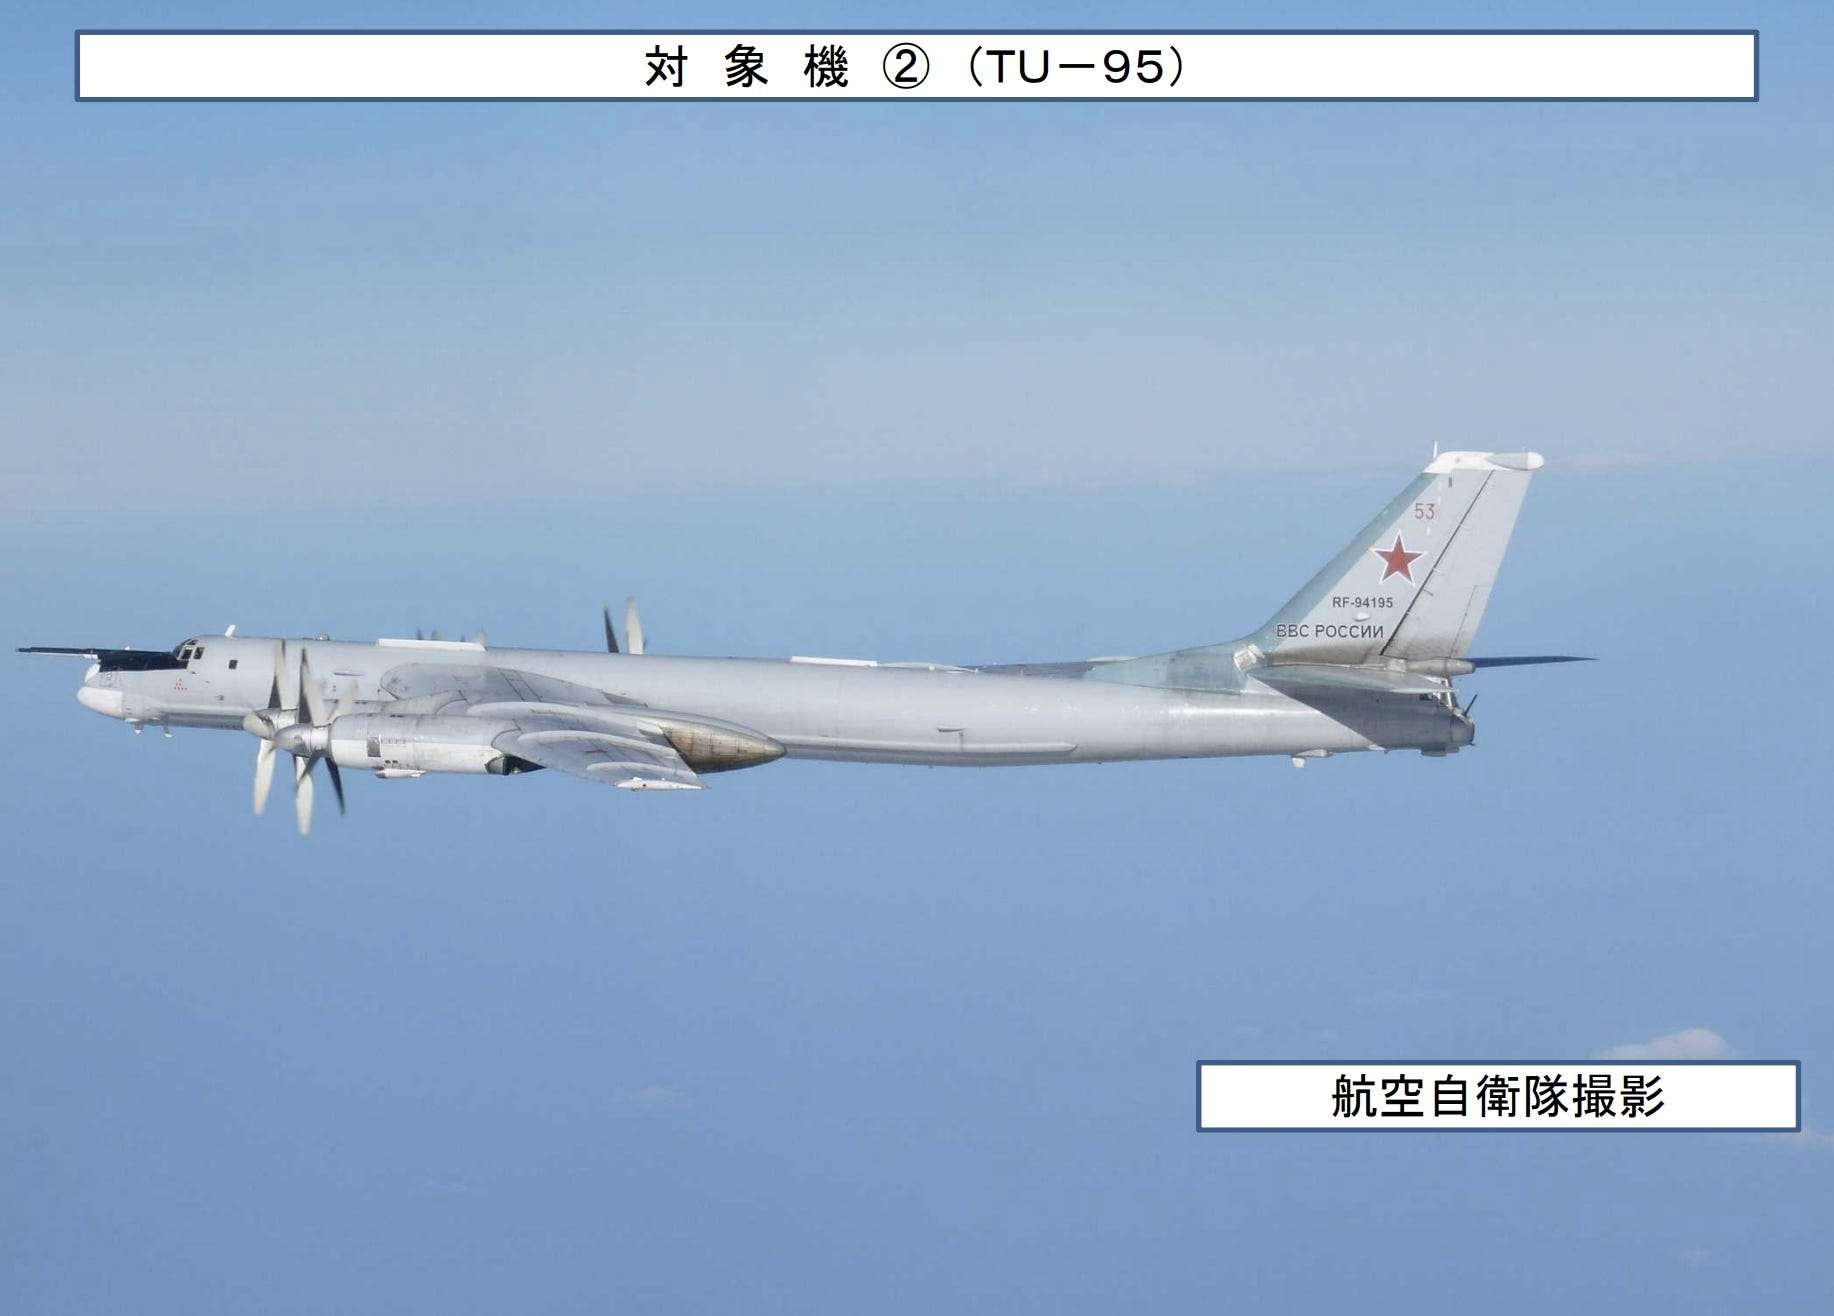 Russian and Chinese bombers conducted another joint patrol between South Korea and Japan